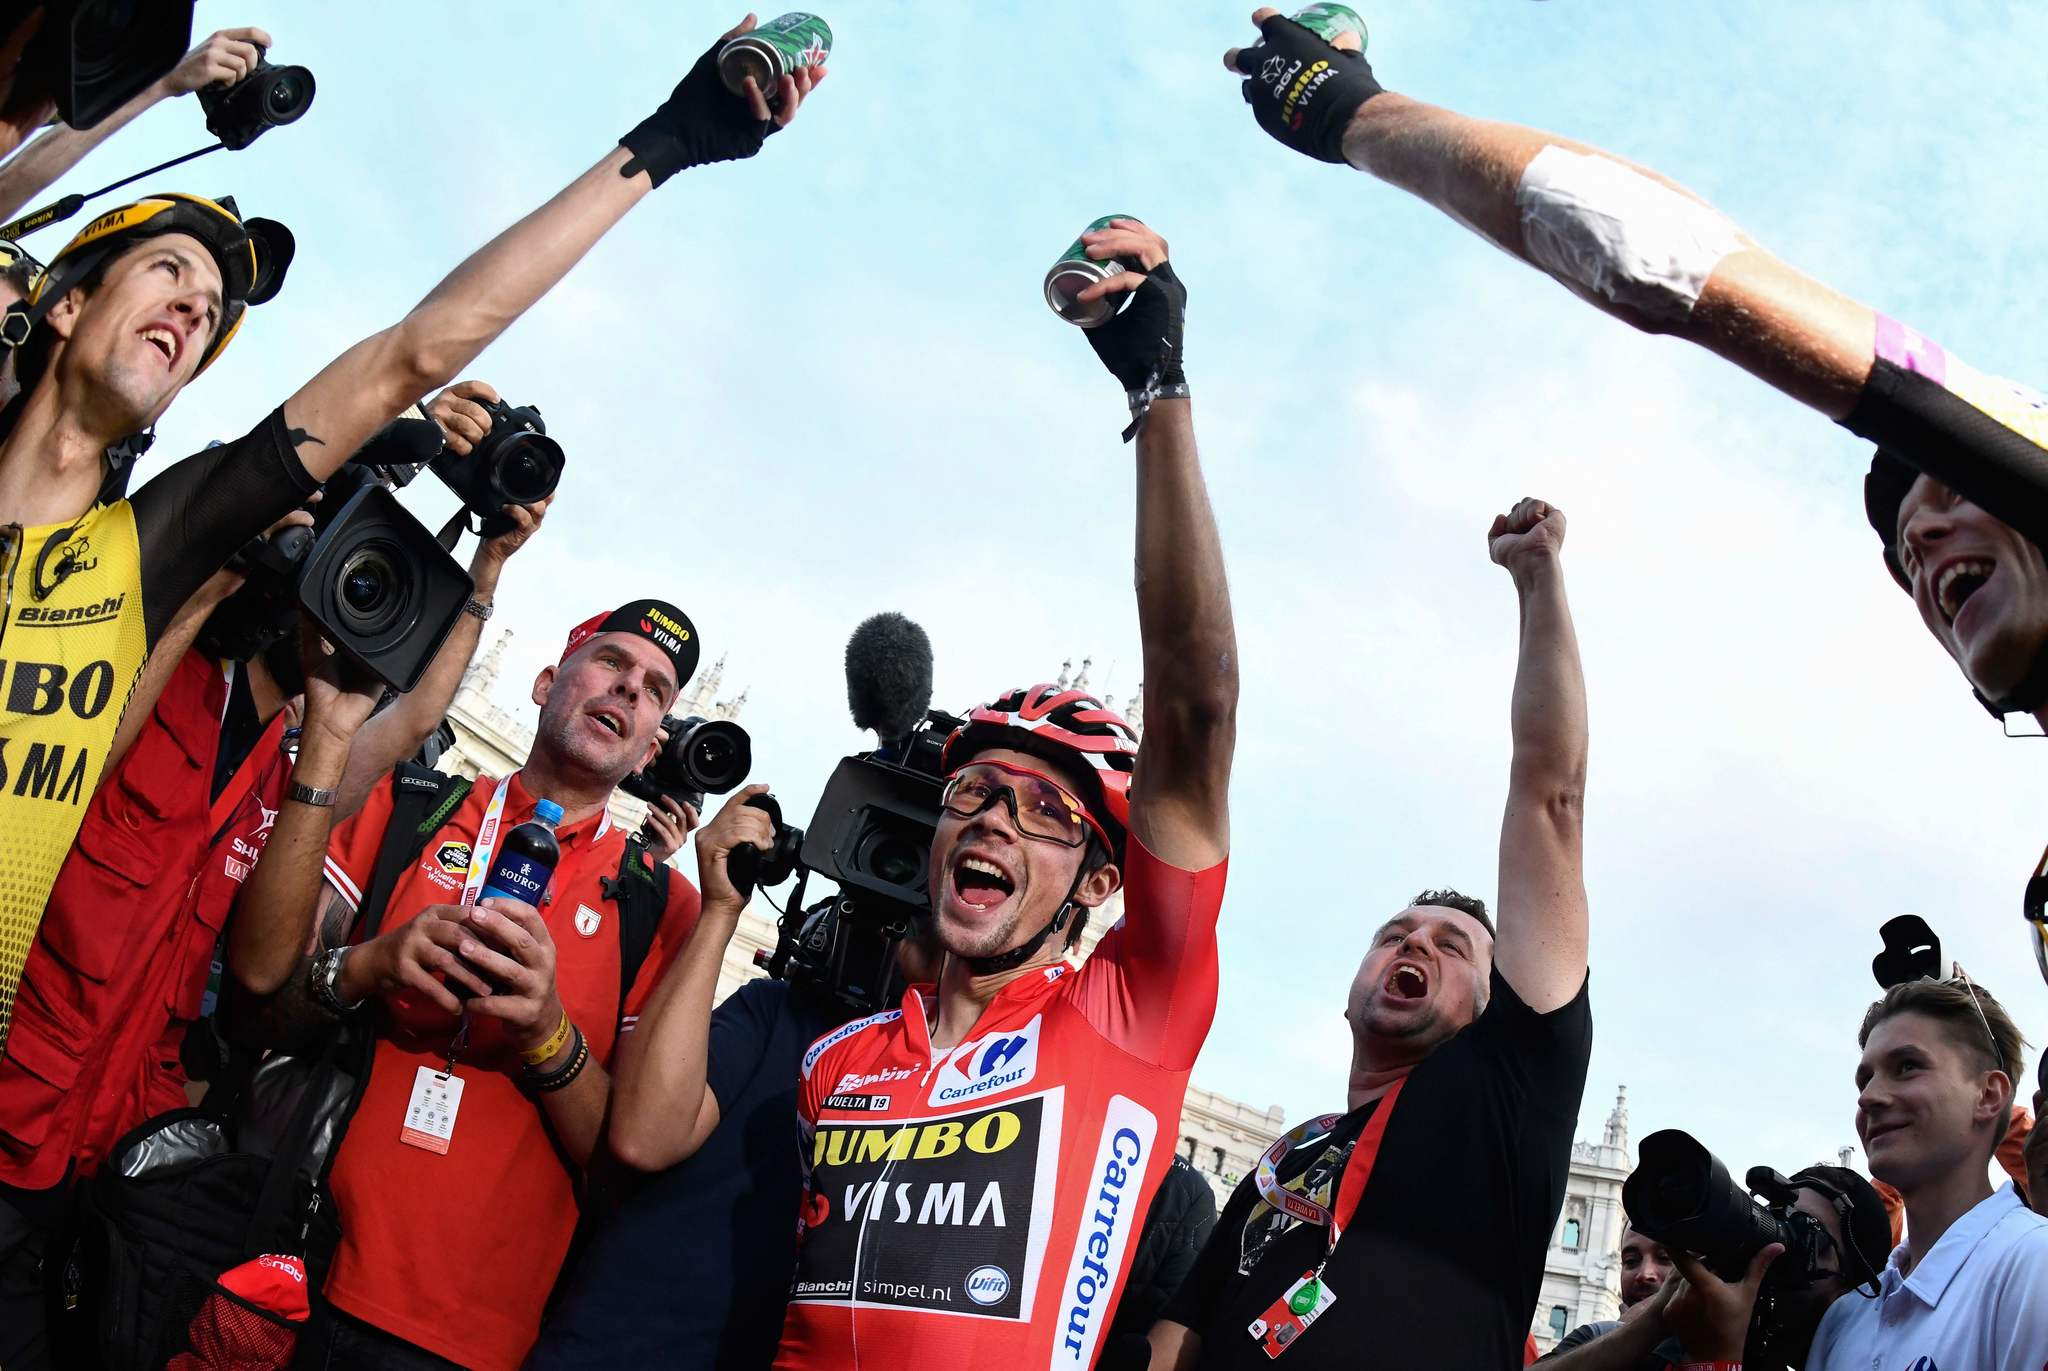 Team Jumbo rider Slovenias Primoz <HIT>Roglic</HIT> (C) celebrates with his teammates after winning the 21st and last stage of the 2019 La Vuelta cycling Tour of Spain, a 106,6 km race from Fuenlabrada to Madrid on September 15, 2019. (Photo by OSCAR DEL POZO / AFP)